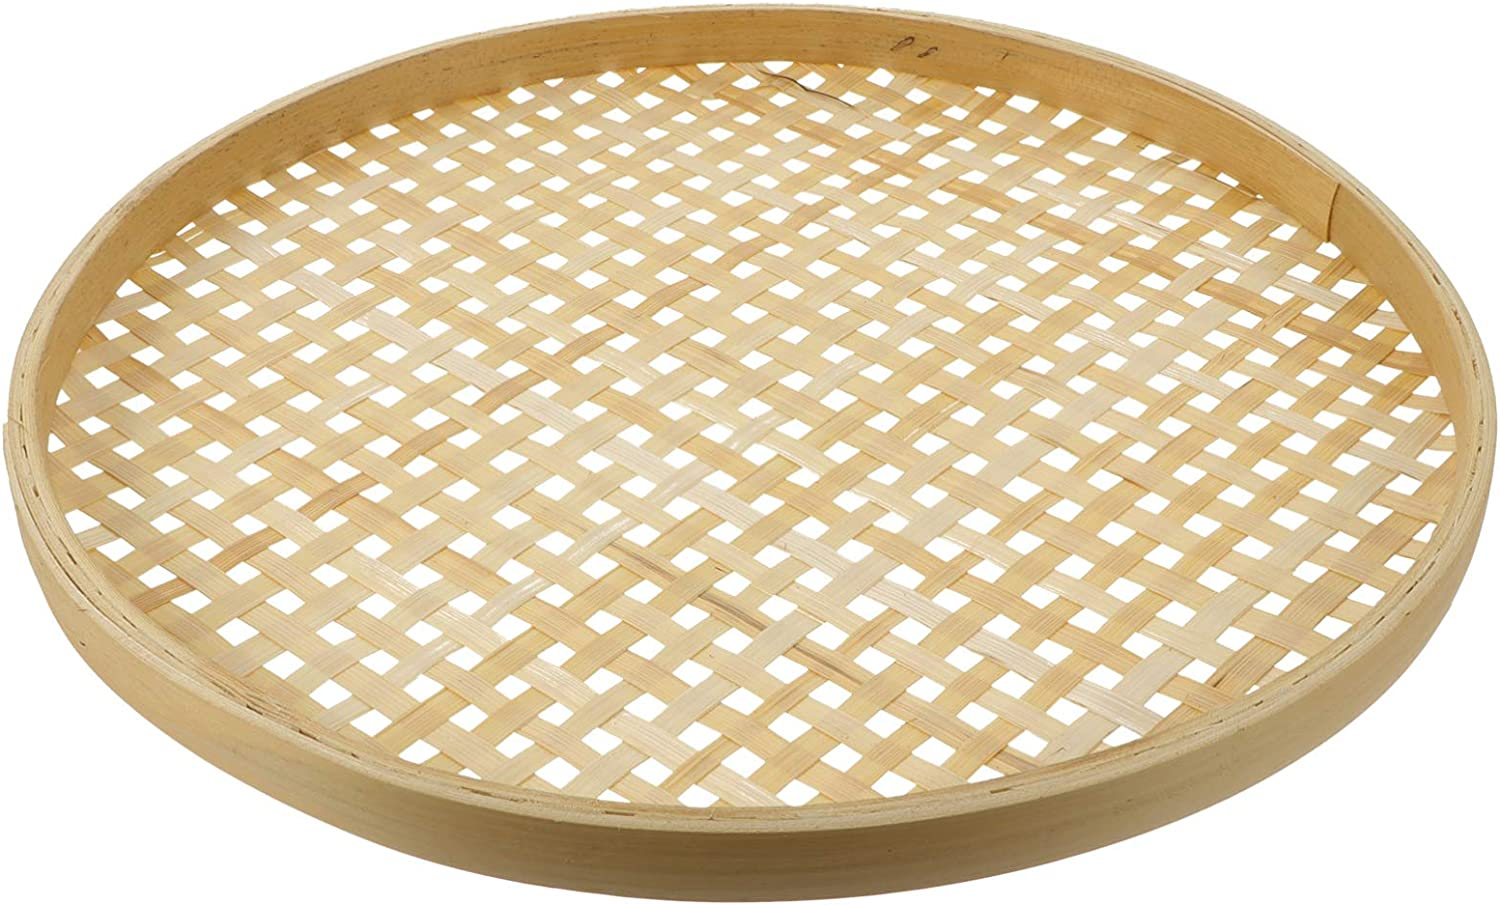 DOITOOL Round Woven Bamboo Basket Tray Bamboo Sieve Flat Shallow Drying Food Fruit Basket Dome Lid Cover for DIY Wall Hanging Decorations Indoor Outdoor 26CM